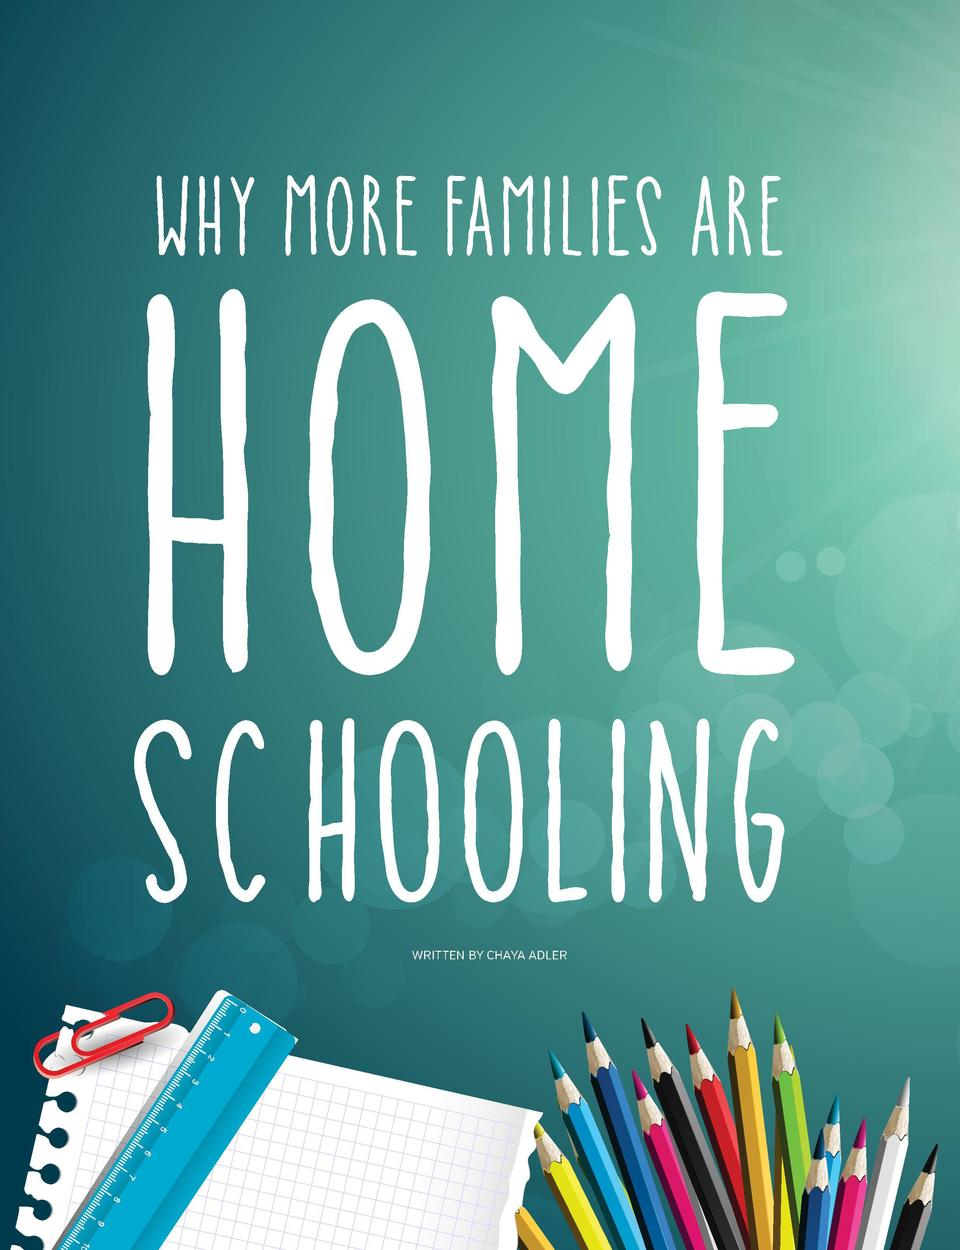 Why More Families Are  Home schooling WRITTEN BY CHAYA ADLER  September calls to mind children preparing their freshly-sta...